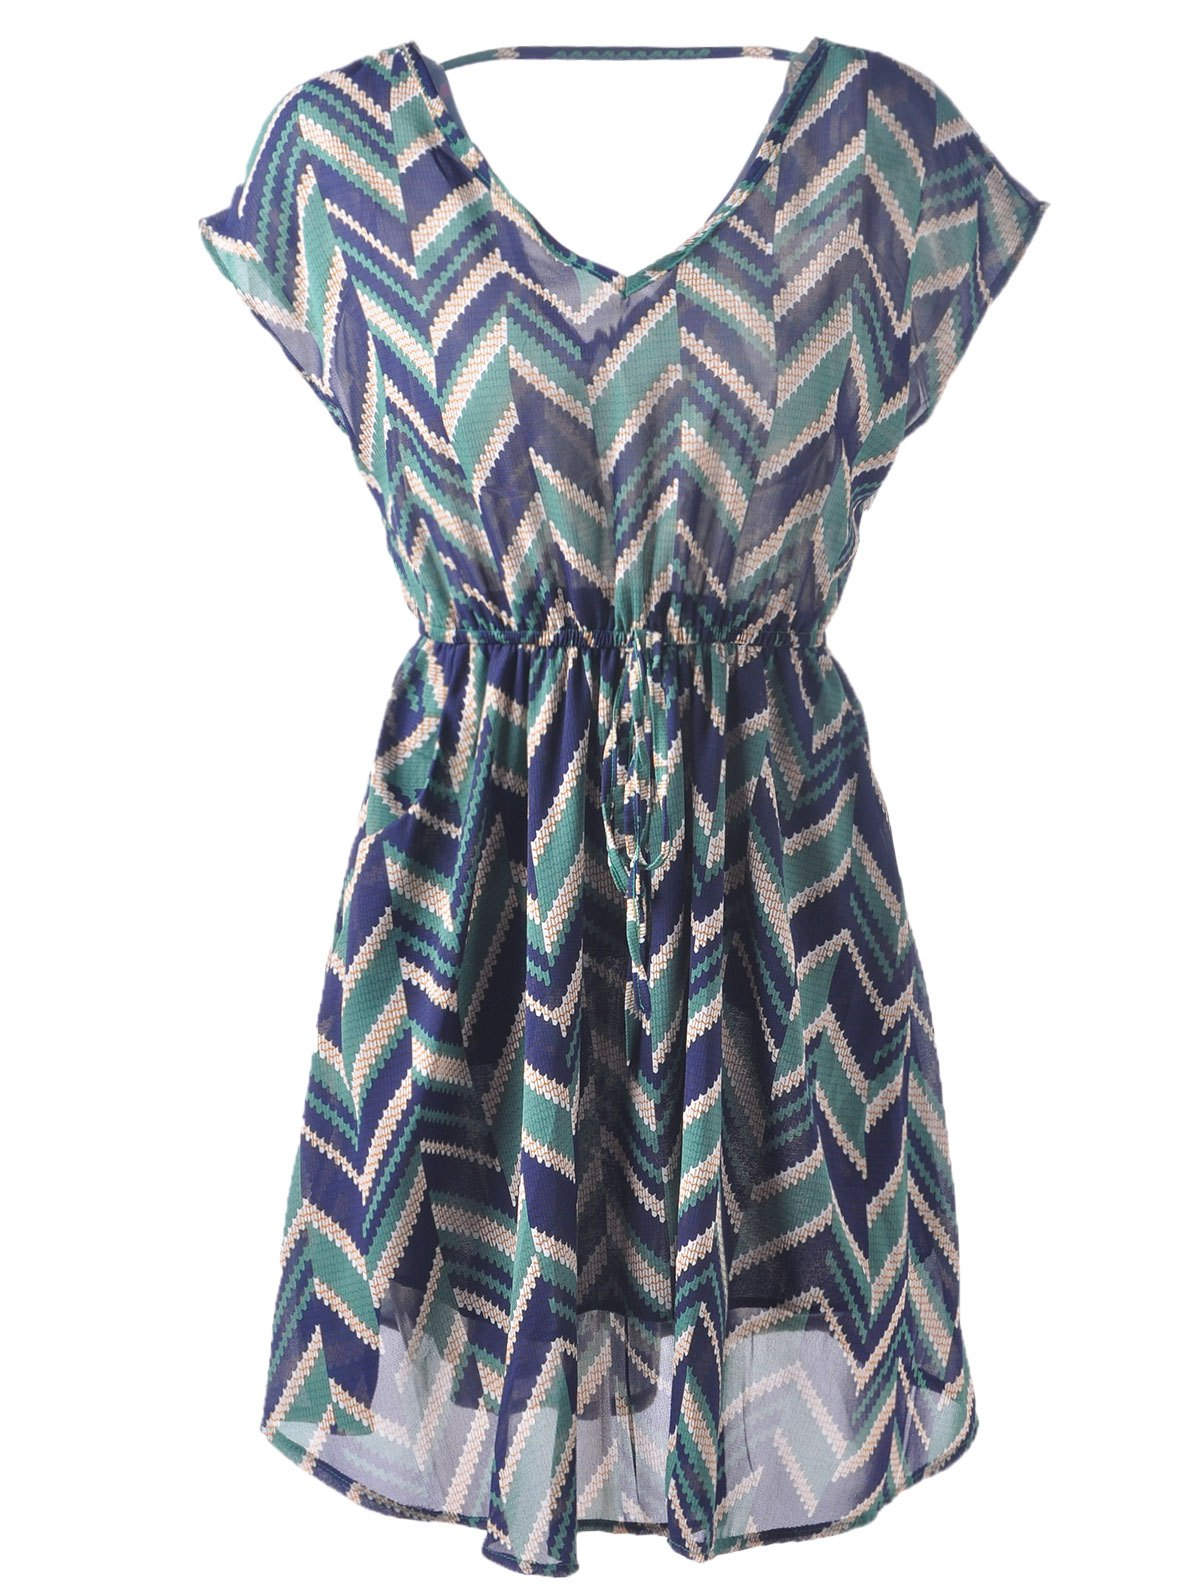 Stylish Women's V-Neck Print Backless Tie Cap Sleeve Mid-Calf Dress - GREEN ONE SIZE(FIT SIZE XS TO M)